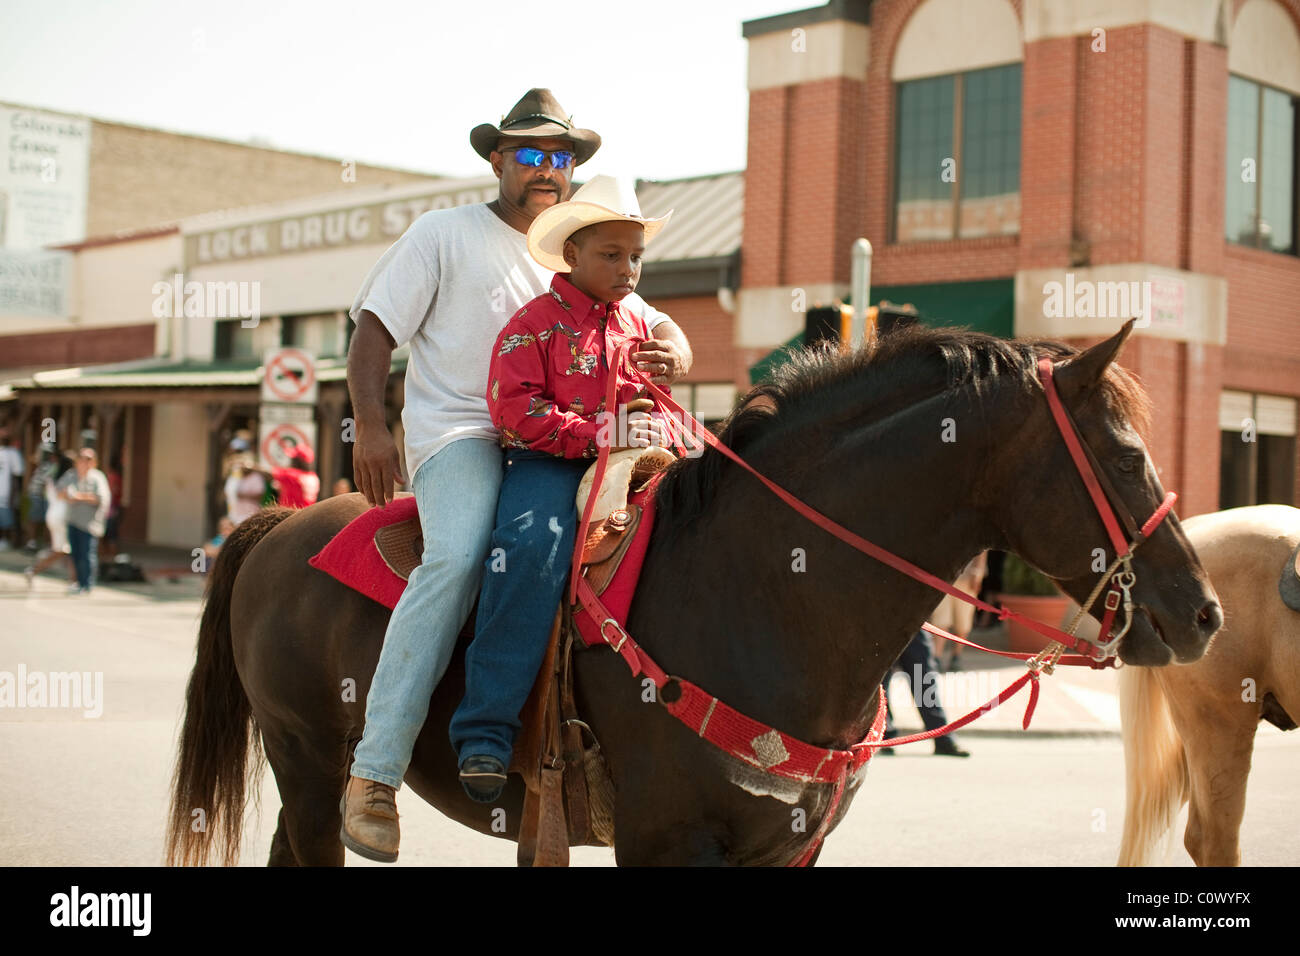 African-American man and boy ride a horse during a parade celebrating Juneteenth in downtown Bastrop, Texas - Stock Image